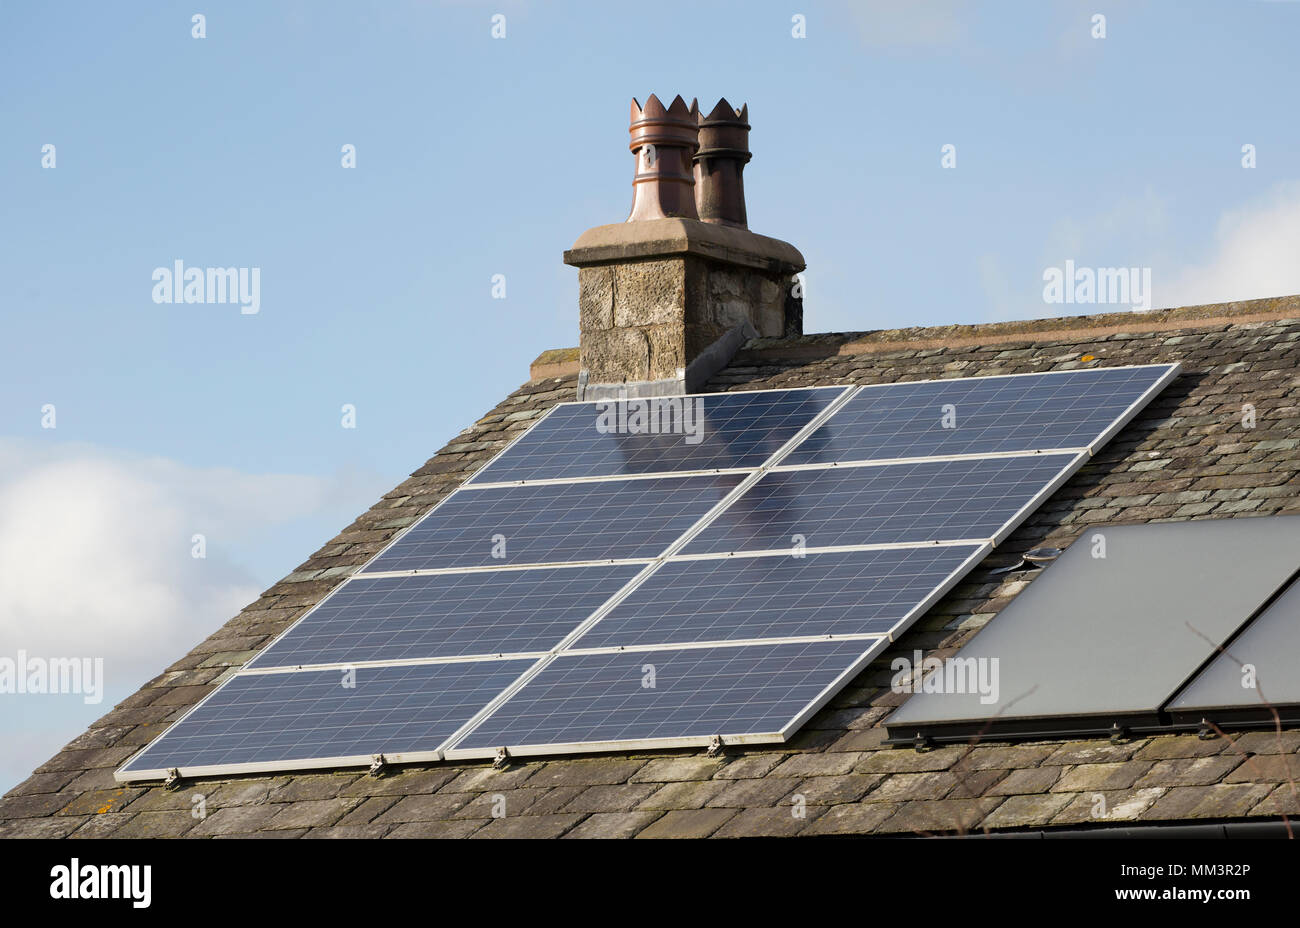 Solar panels on the roof of a house next to traditonal chimney pots. North Dorset England UK - Stock Image